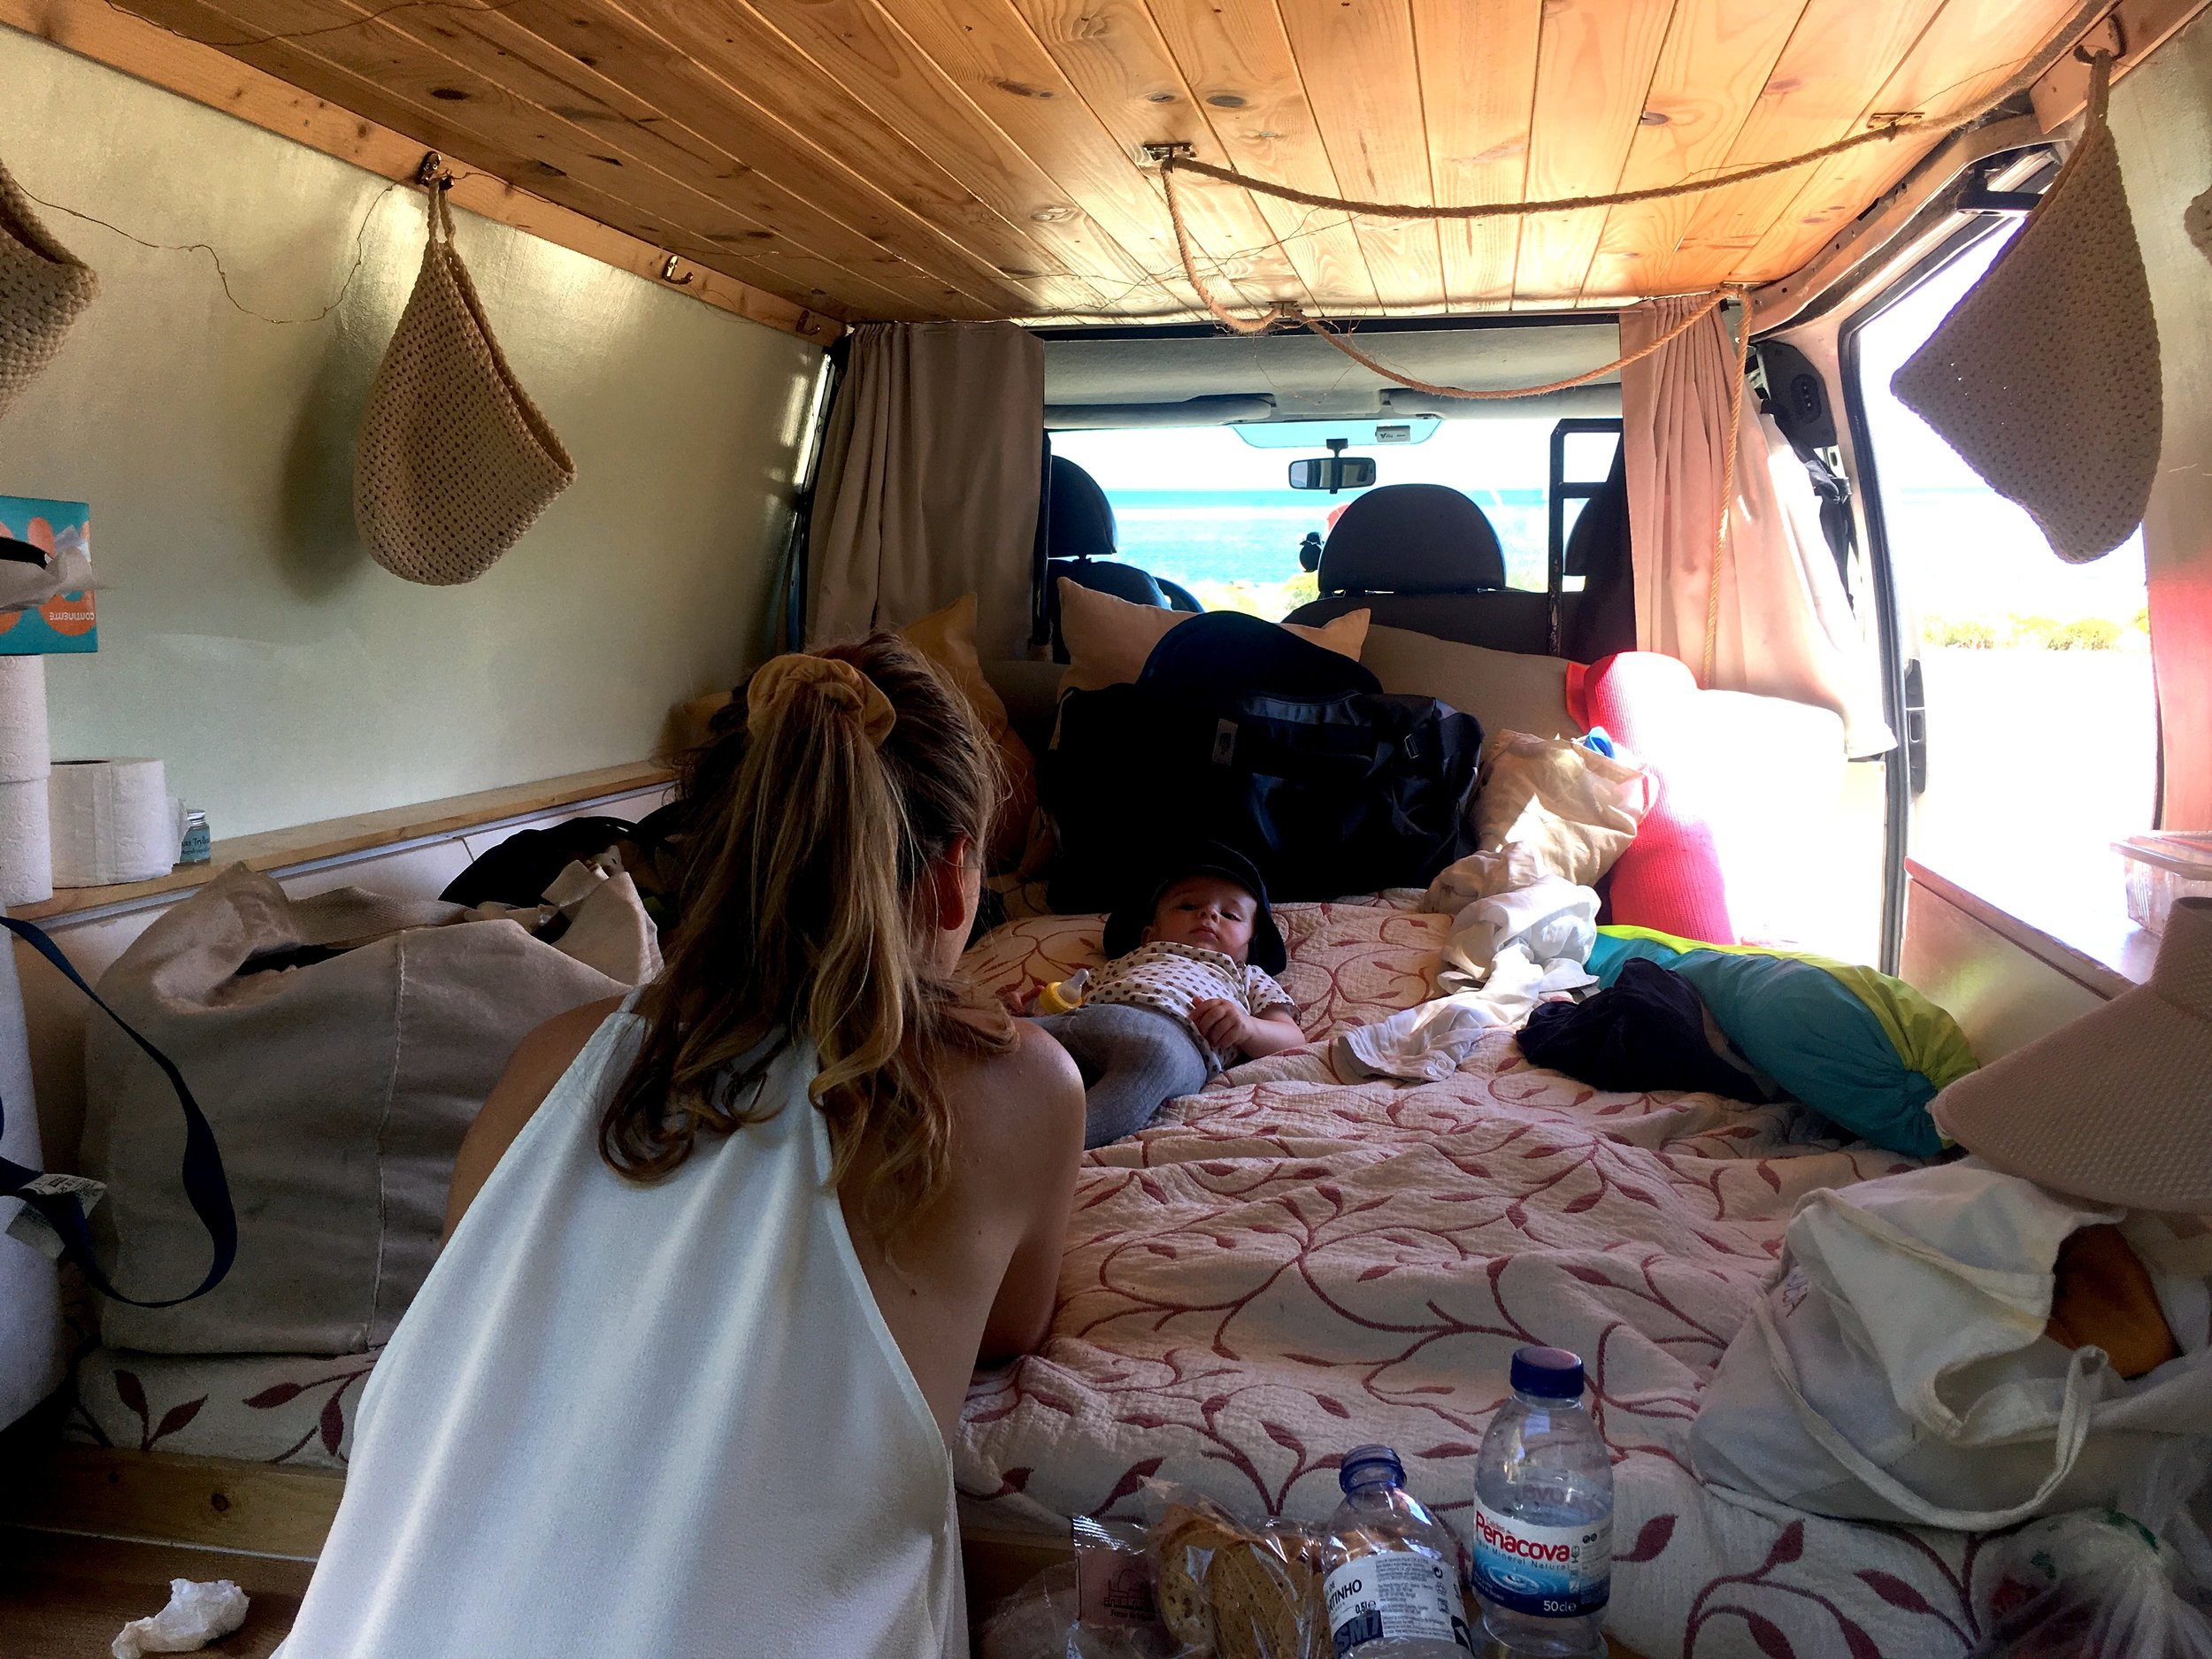 Chill-time in a cool van. Photo credit: Katrine Voight